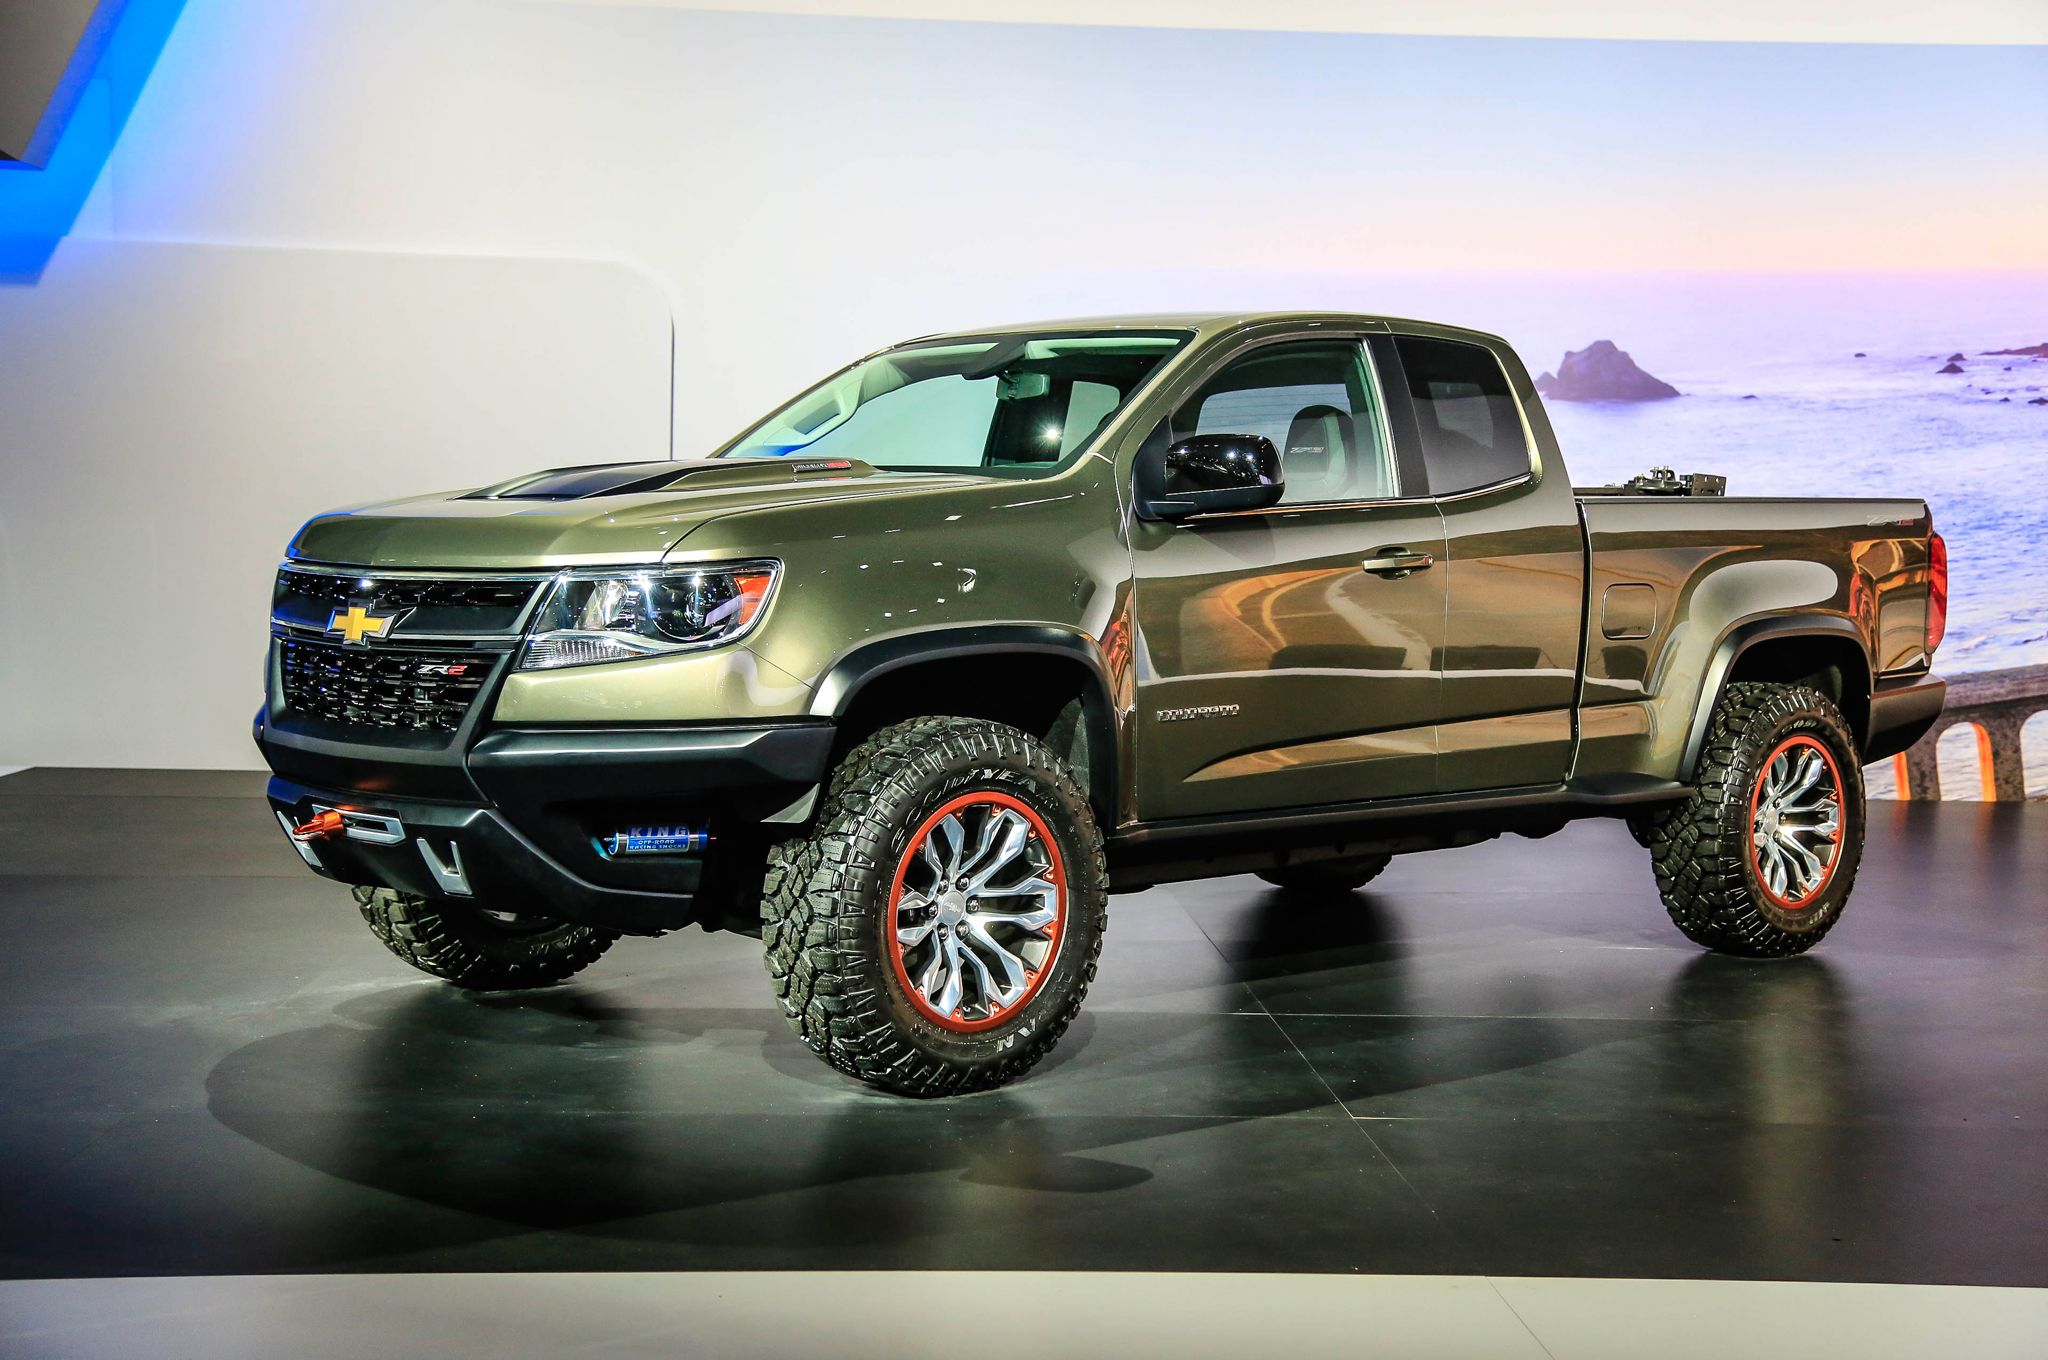 2015 Chevrolet Colorado ZR2 Concept Concept Cars